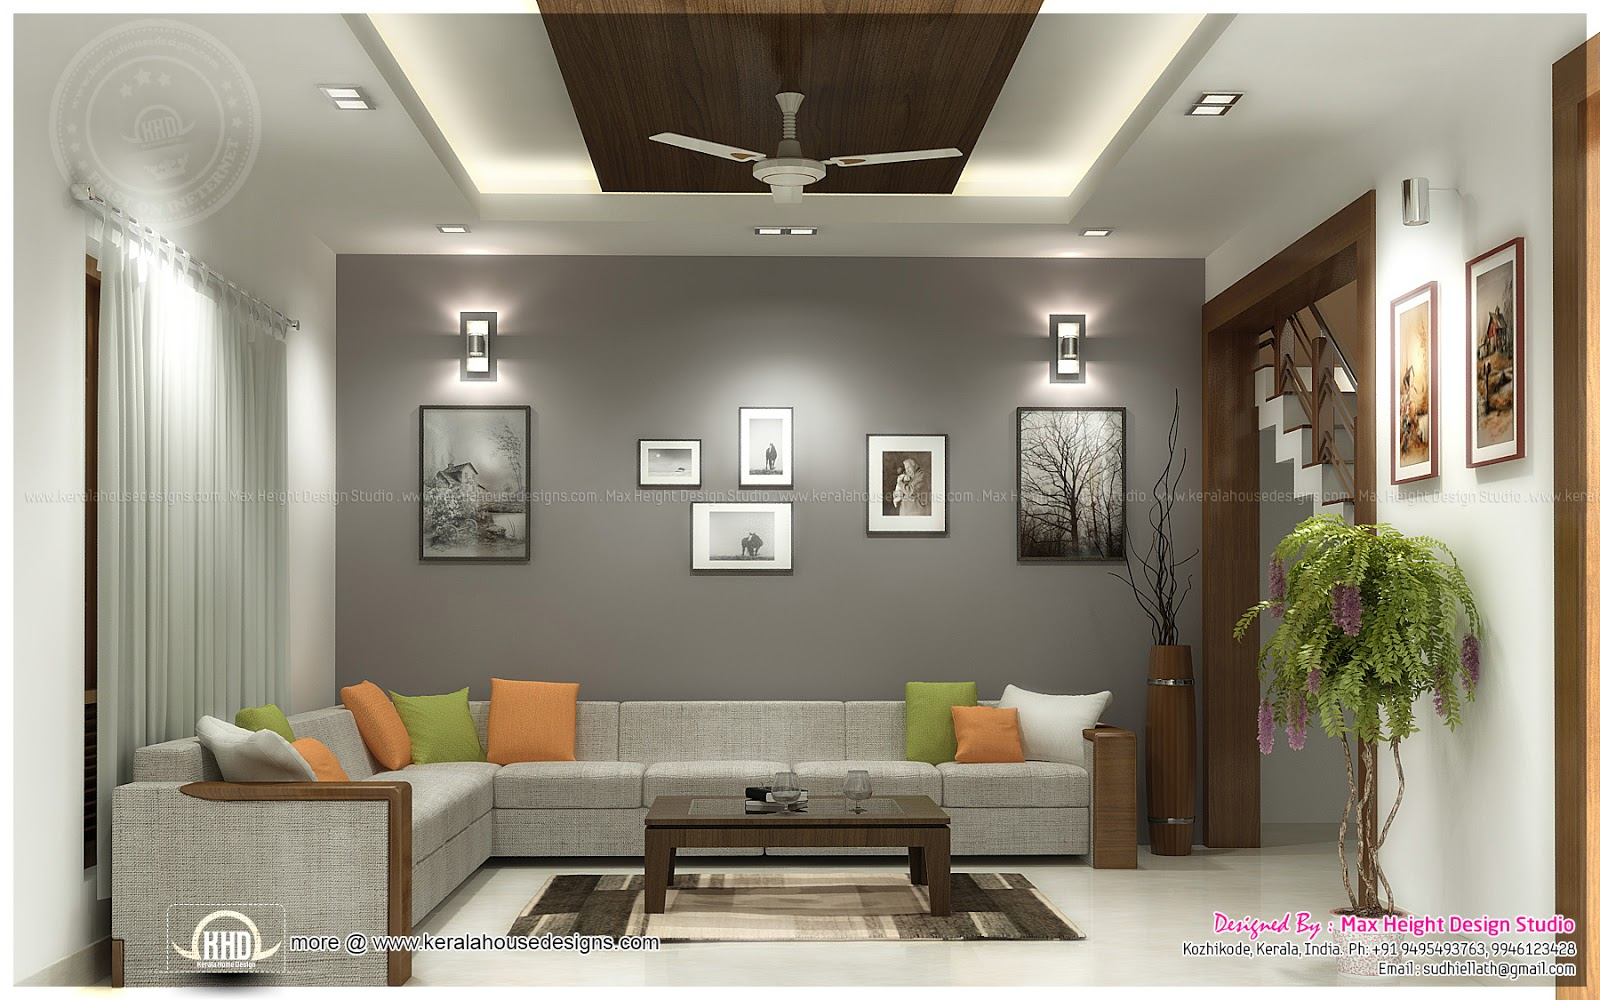 Beautiful interior ideas for home kerala home design and floor plans - Design of inside house ...